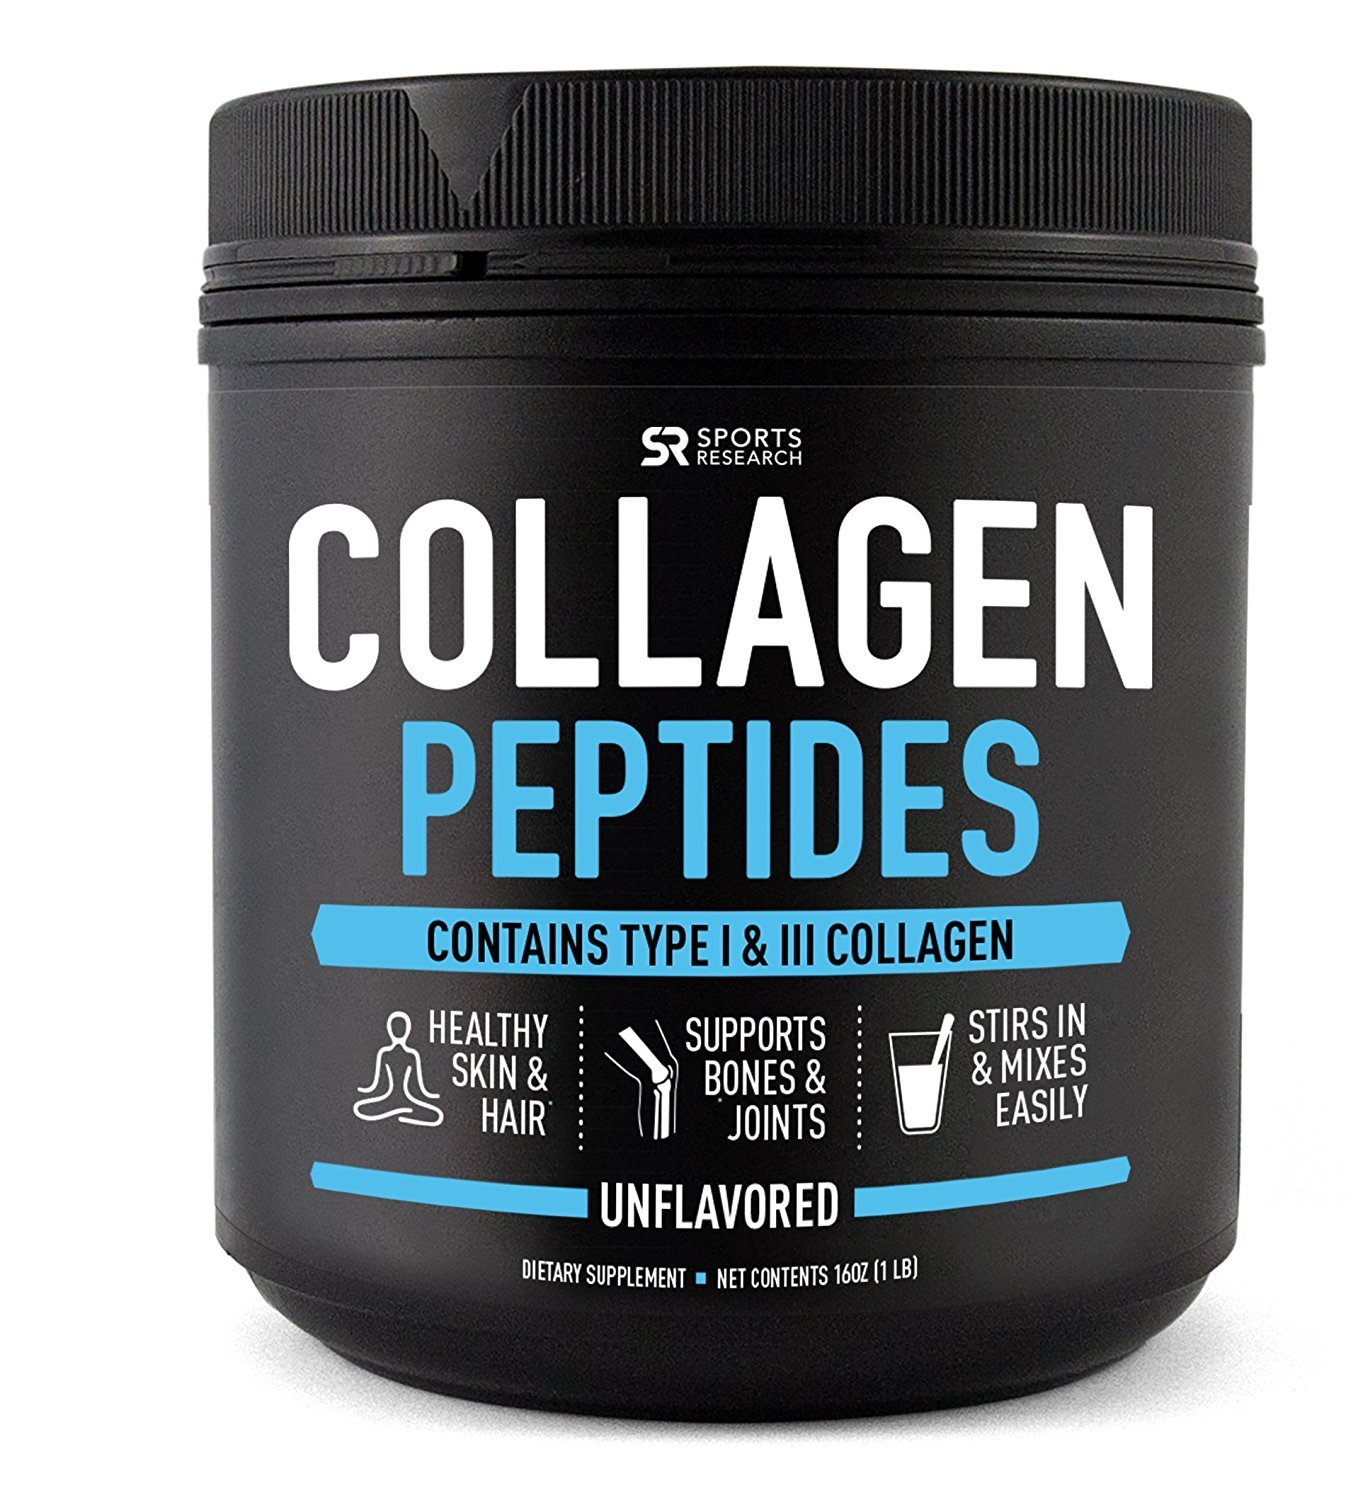 Pure Collagen Peptides Powder (Hydrolyzed) | Grass-Fed, Certified Paleo Friendly, Non-Gmo and Gluten Free - Unflavored